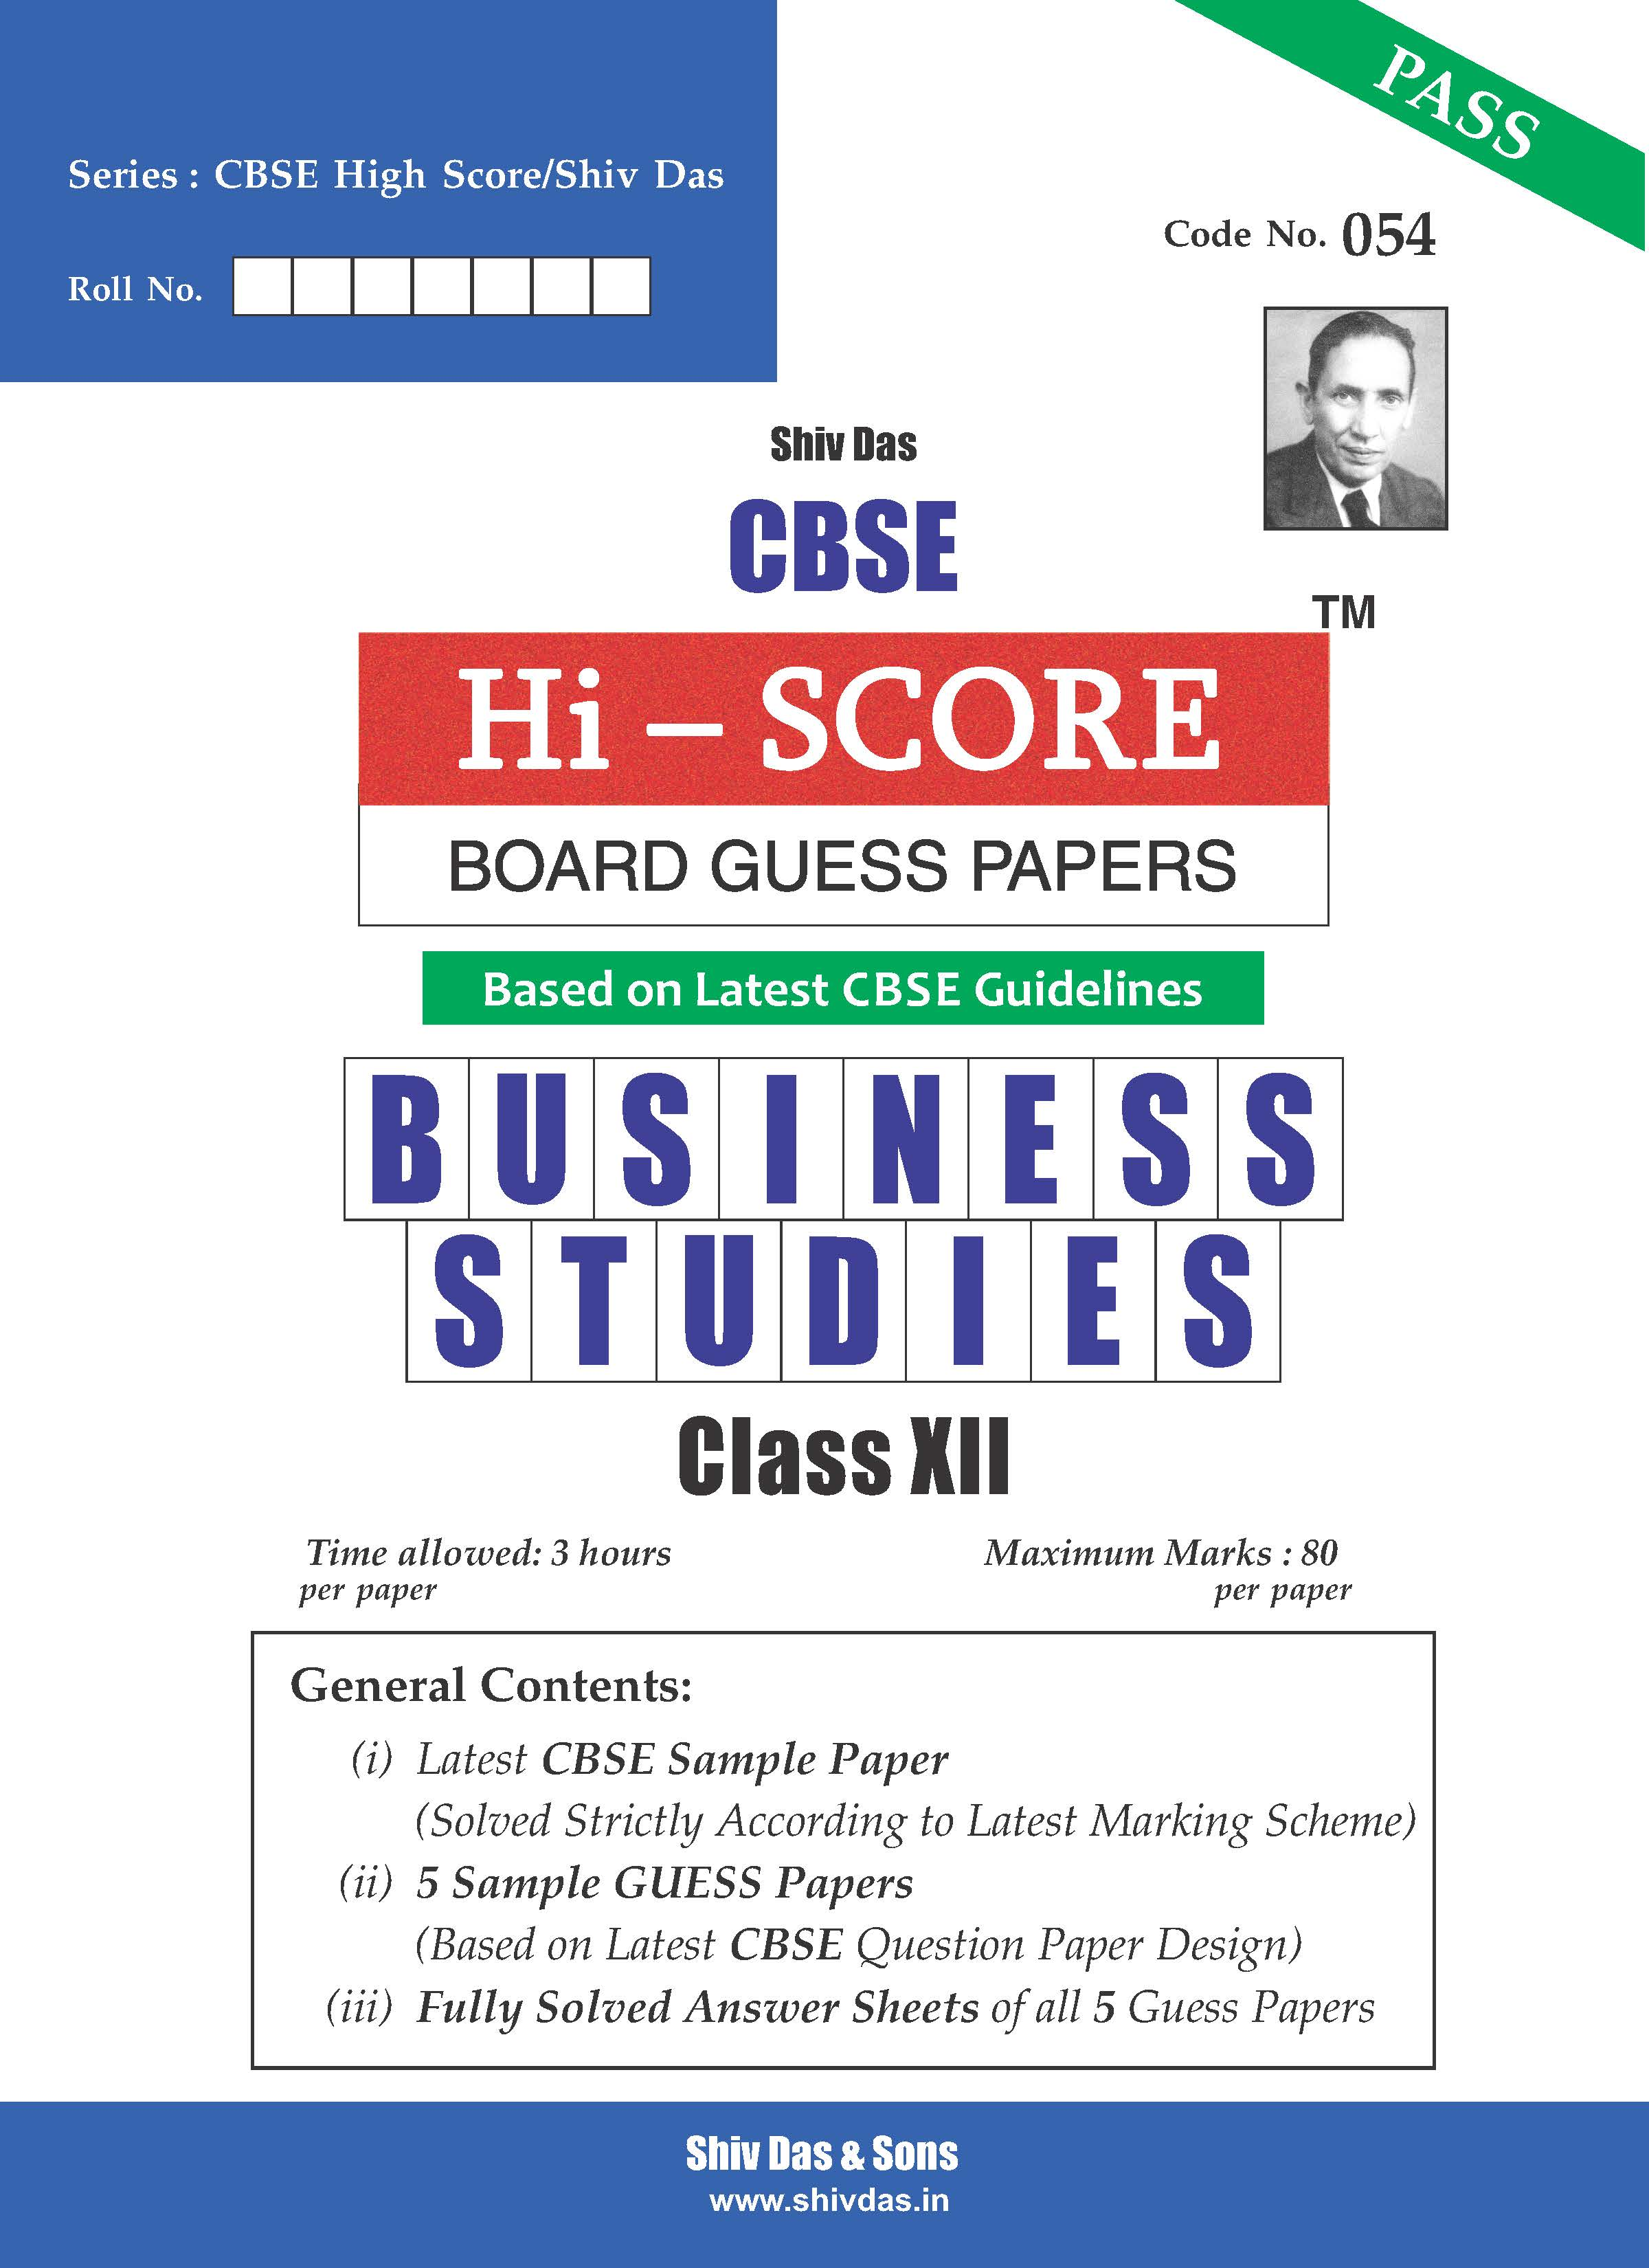 CBSE Hi Score Board Guess Papers for Class 12 Business Studies